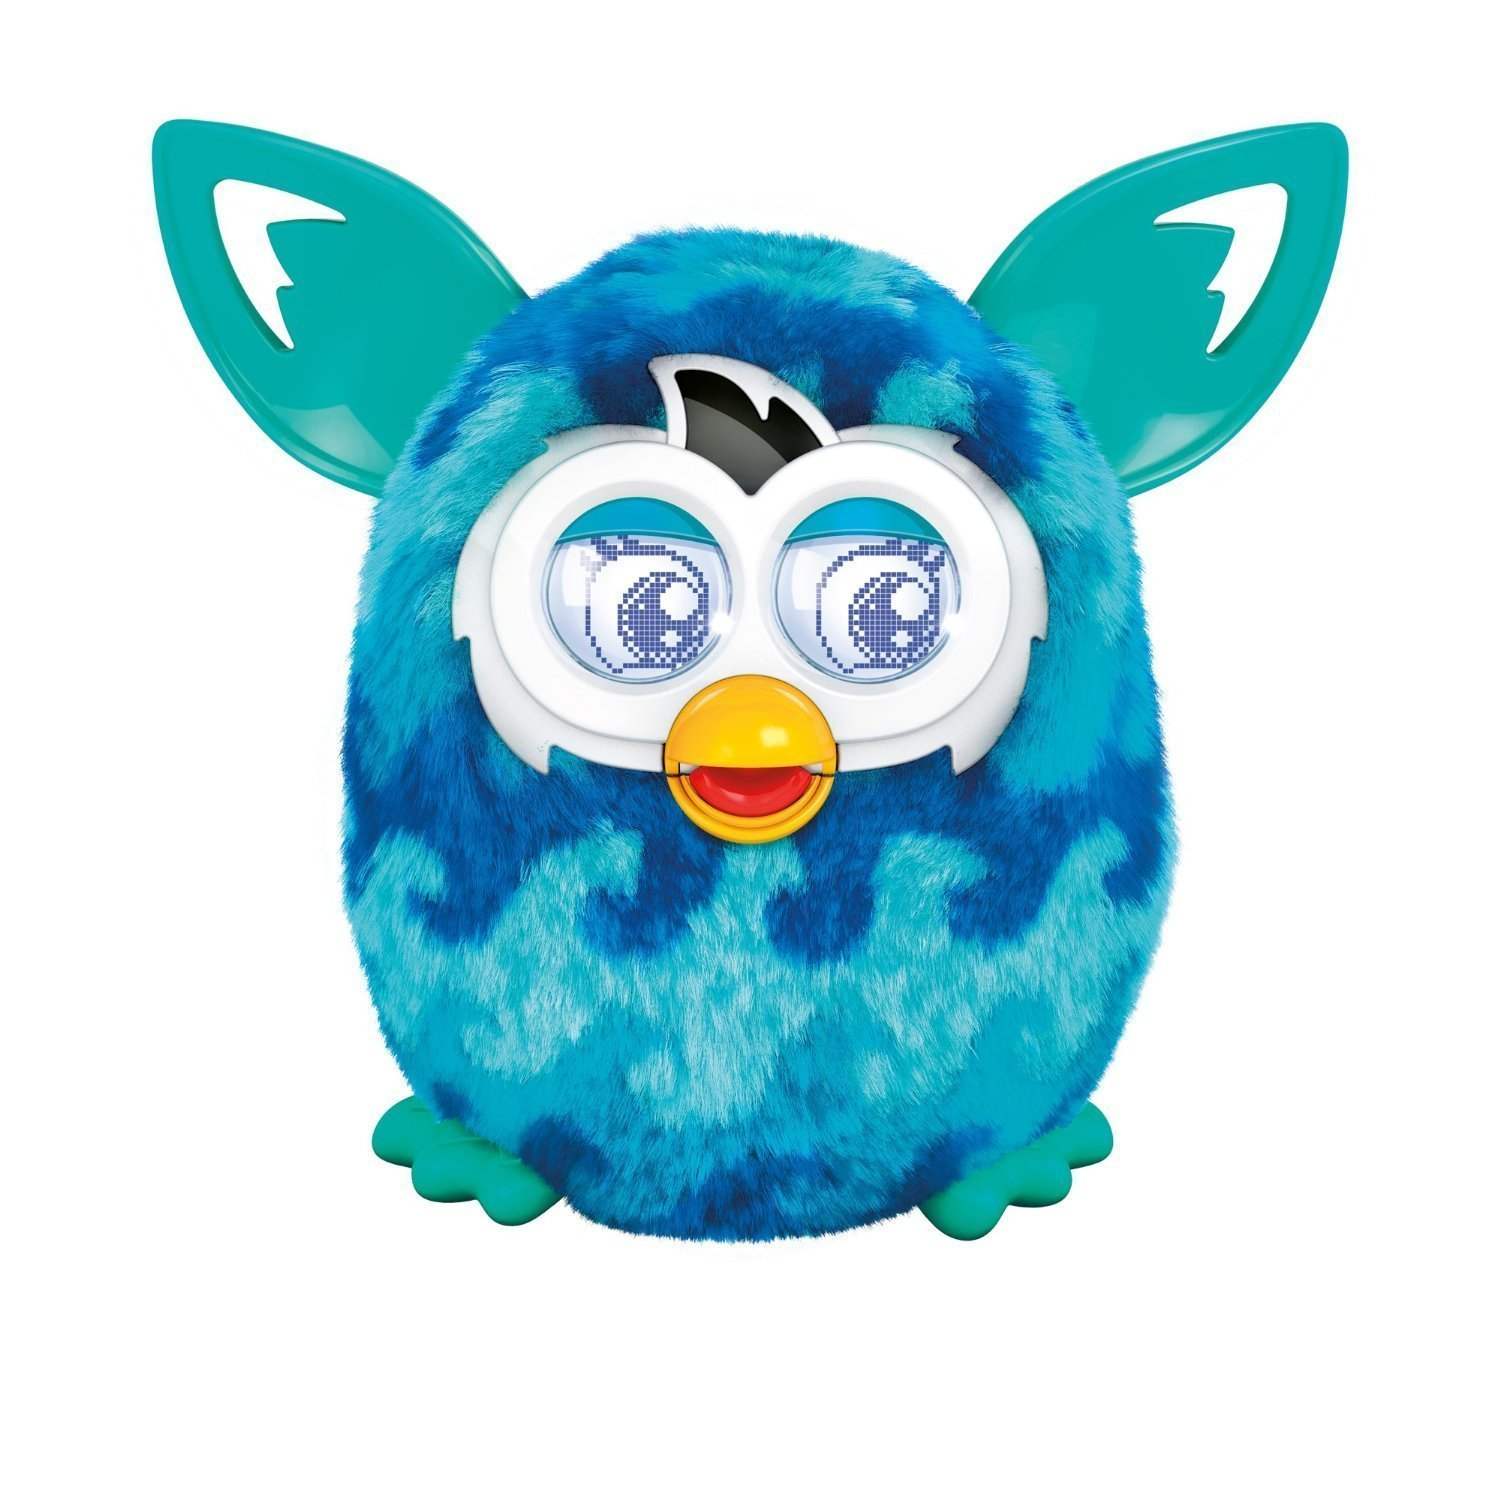 Furbyboomwaves